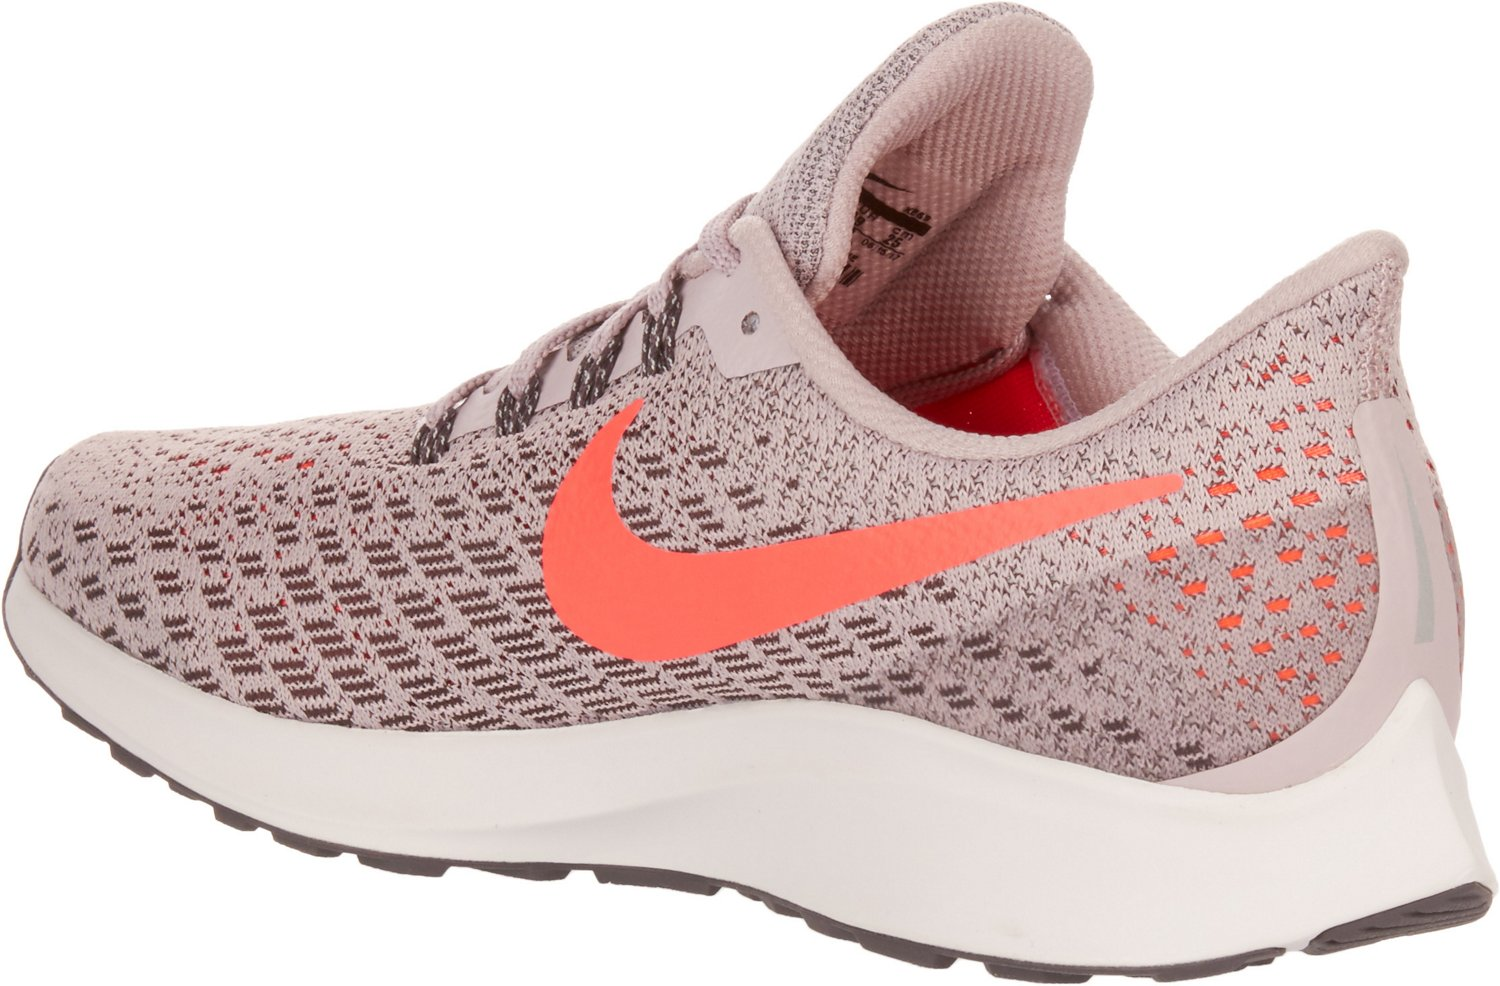 Nike Women's Air Zoom Pegasus 35 Street Sign Running Shoes - view number 1